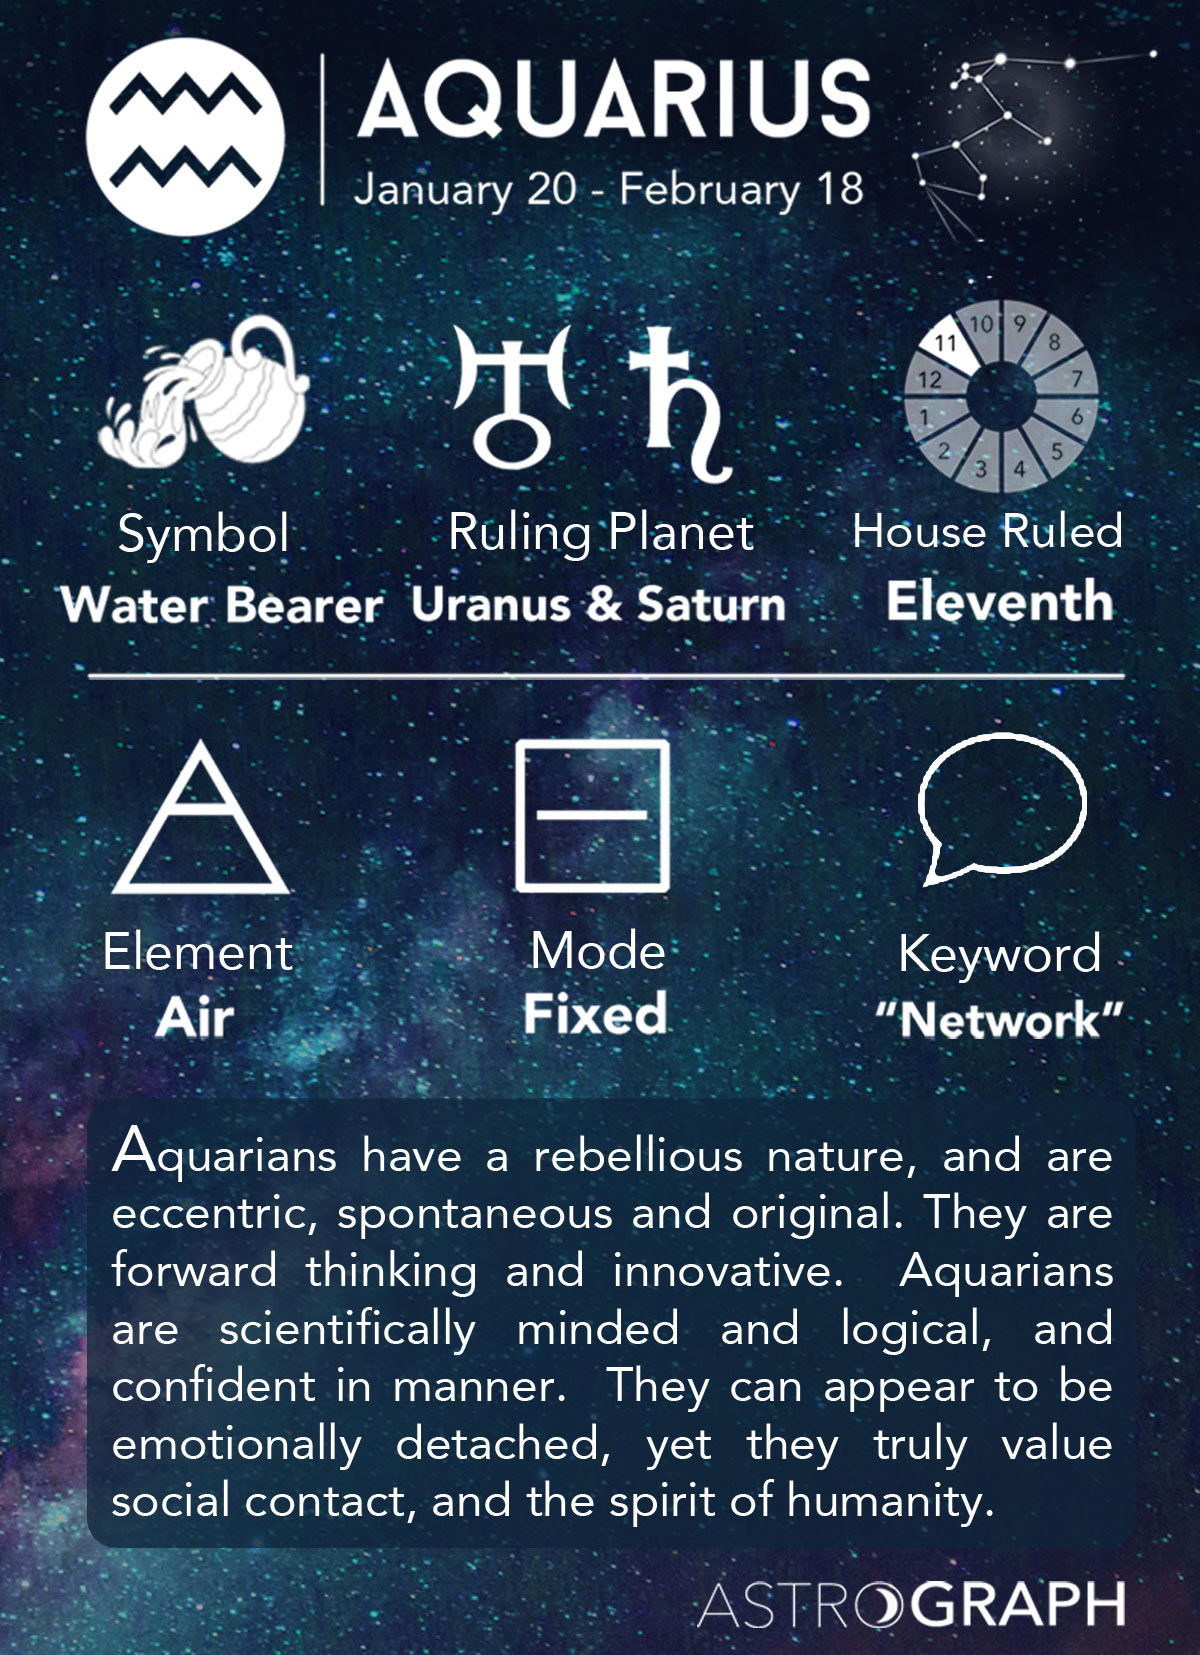 15 Reasons Why It's Awesome to be an Aquarius